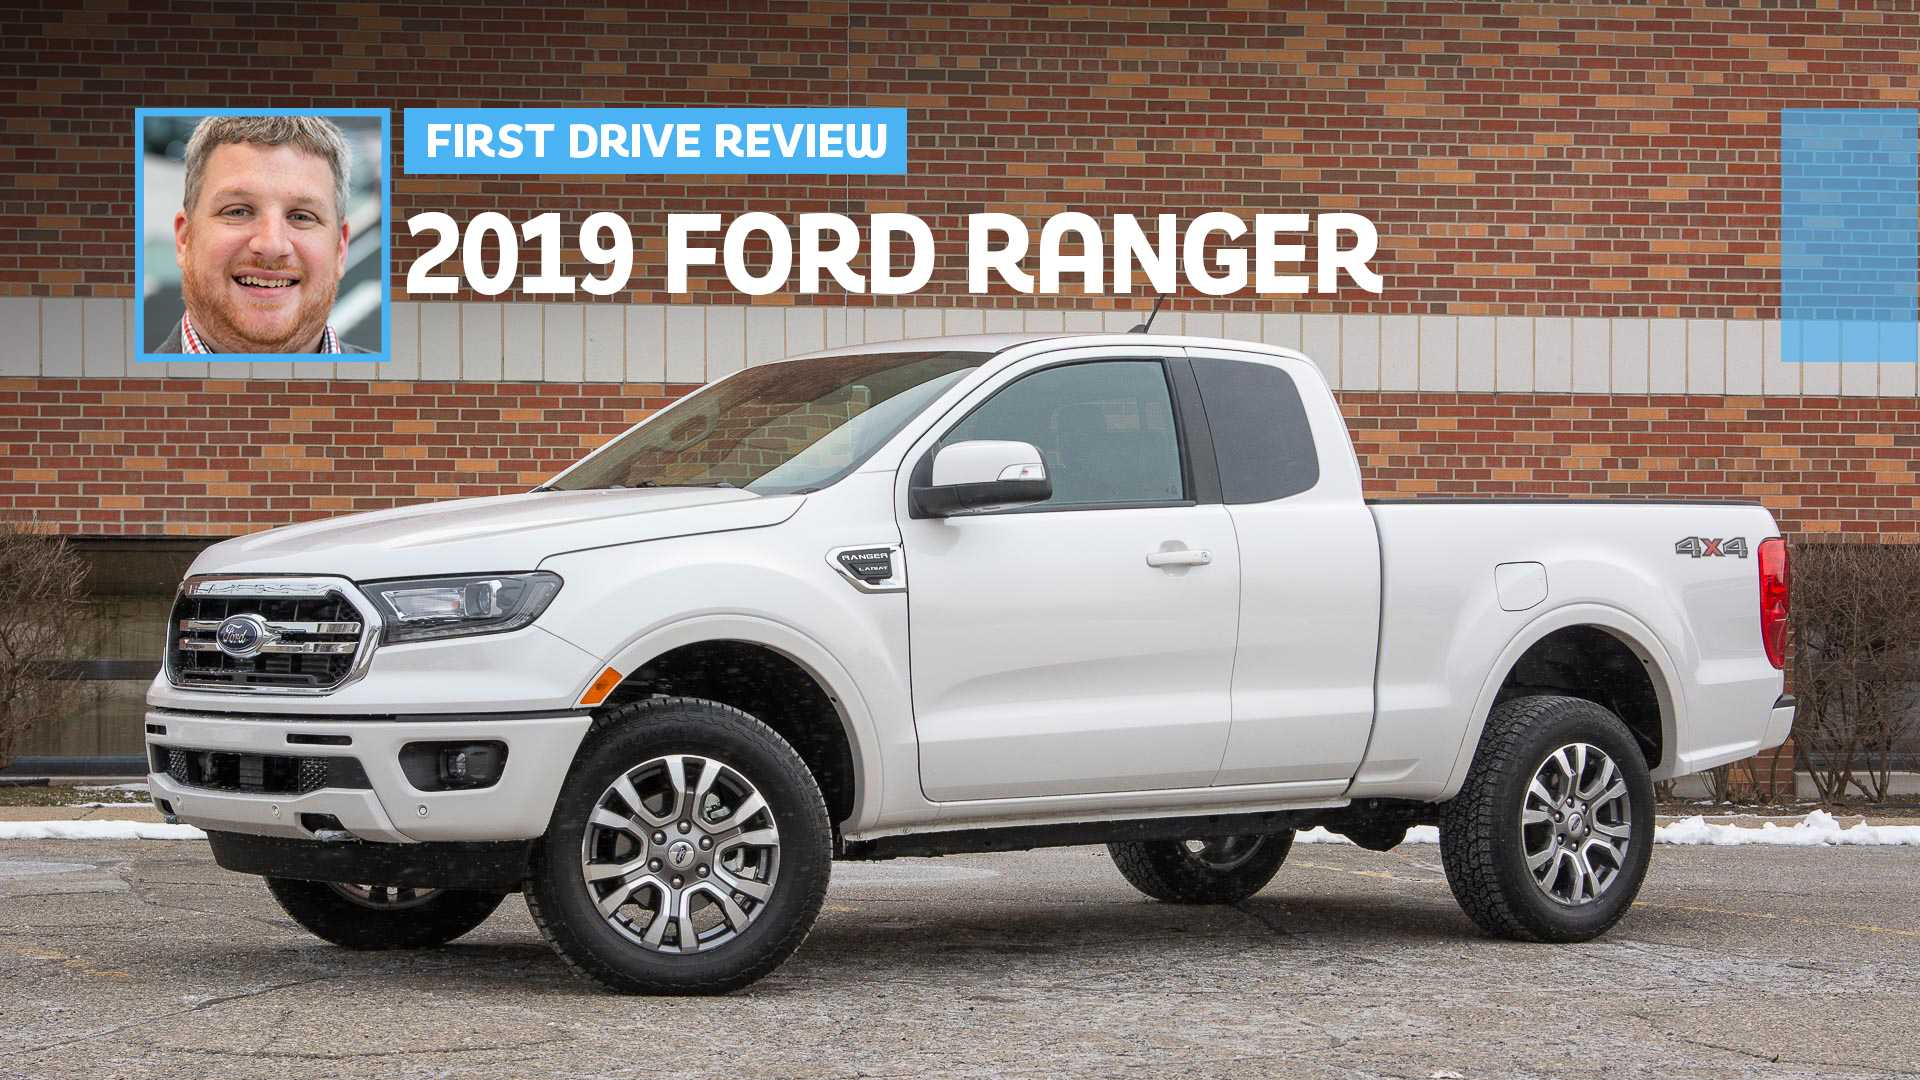 2019 Ford Ranger Lariat Review Already Approaching Its Expiration Date